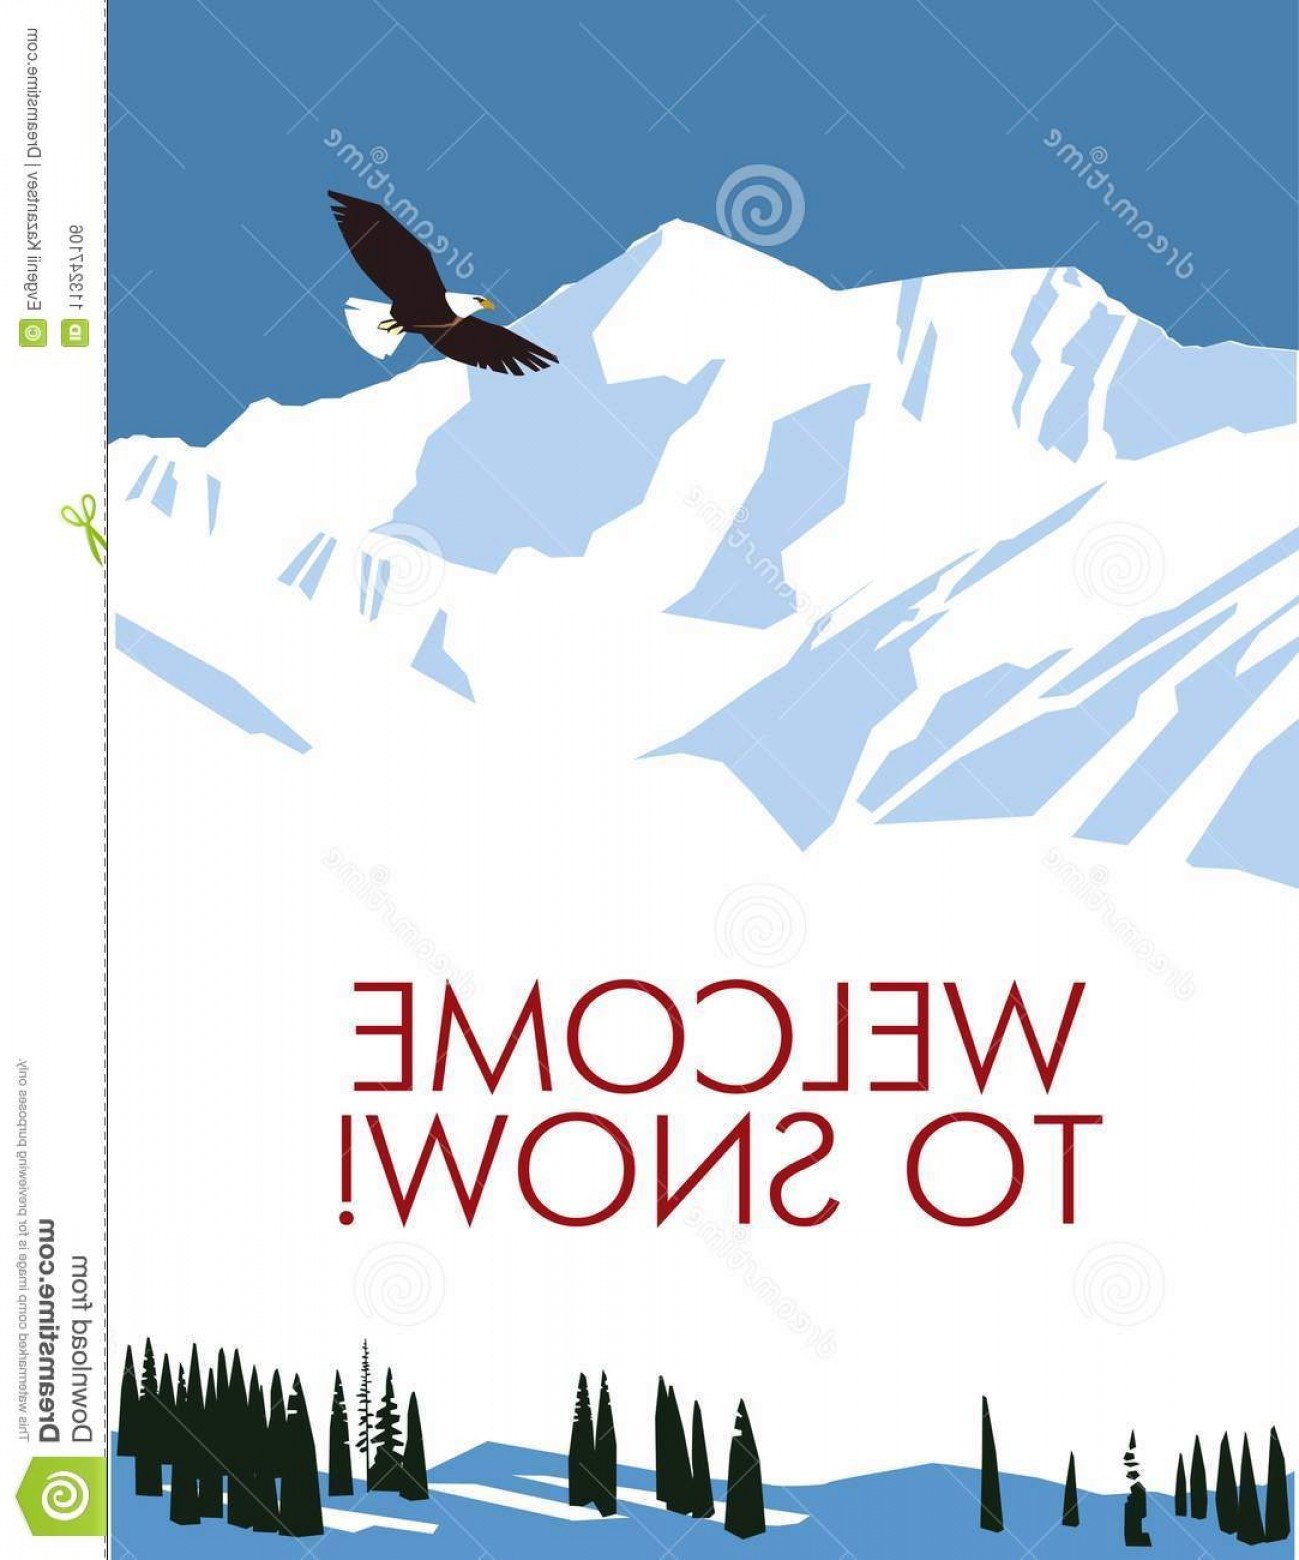 Snowy Mountain Vector Graphics: Painted Snowy Mountains Poster Vector Drawing Retro Poster Snowy Mountains Flying Distance Eagle Snow Resort Image